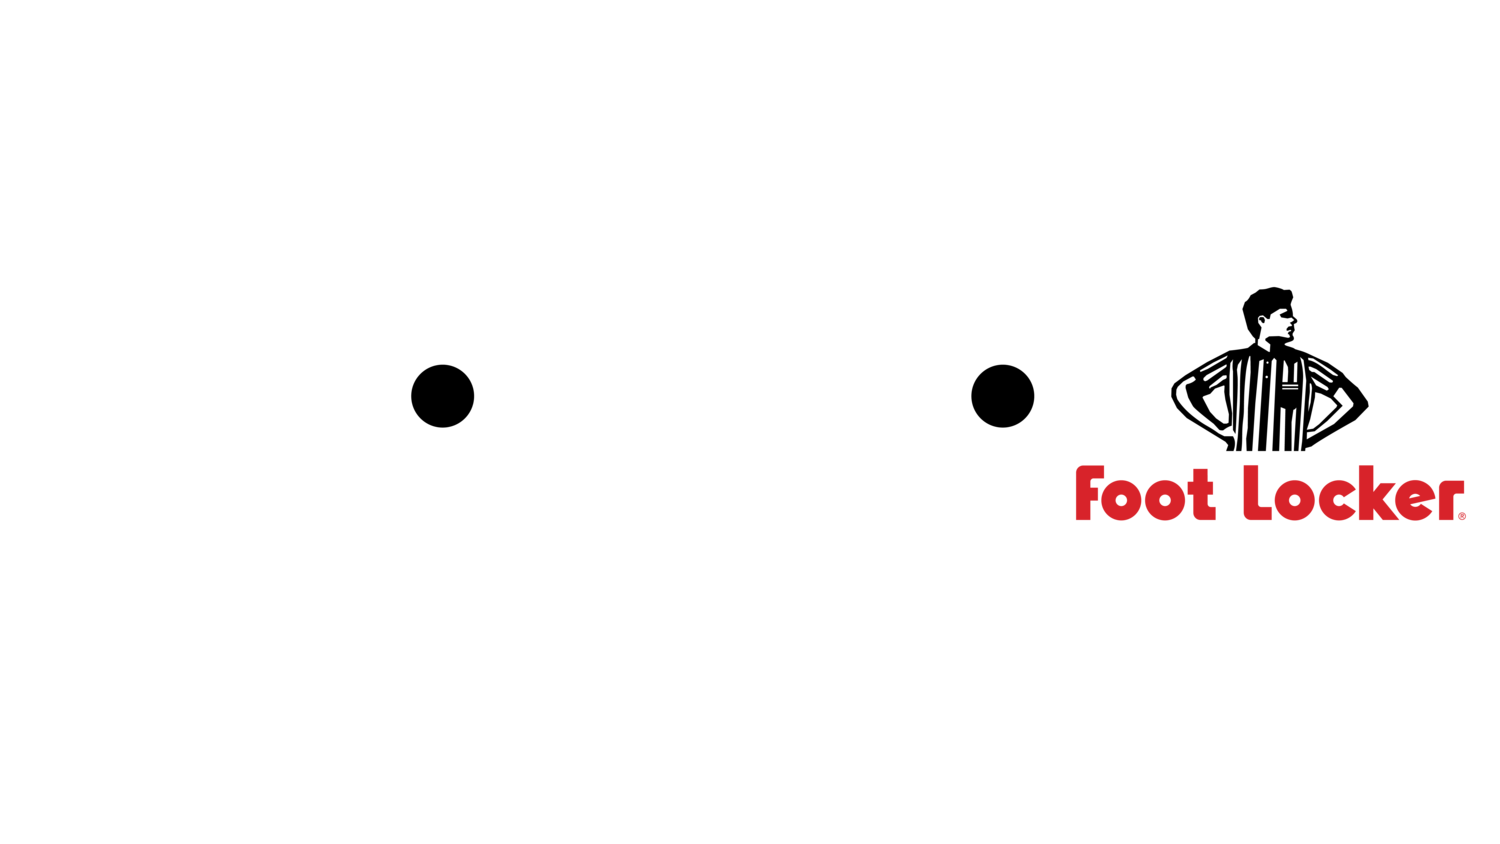 Streetball Madness